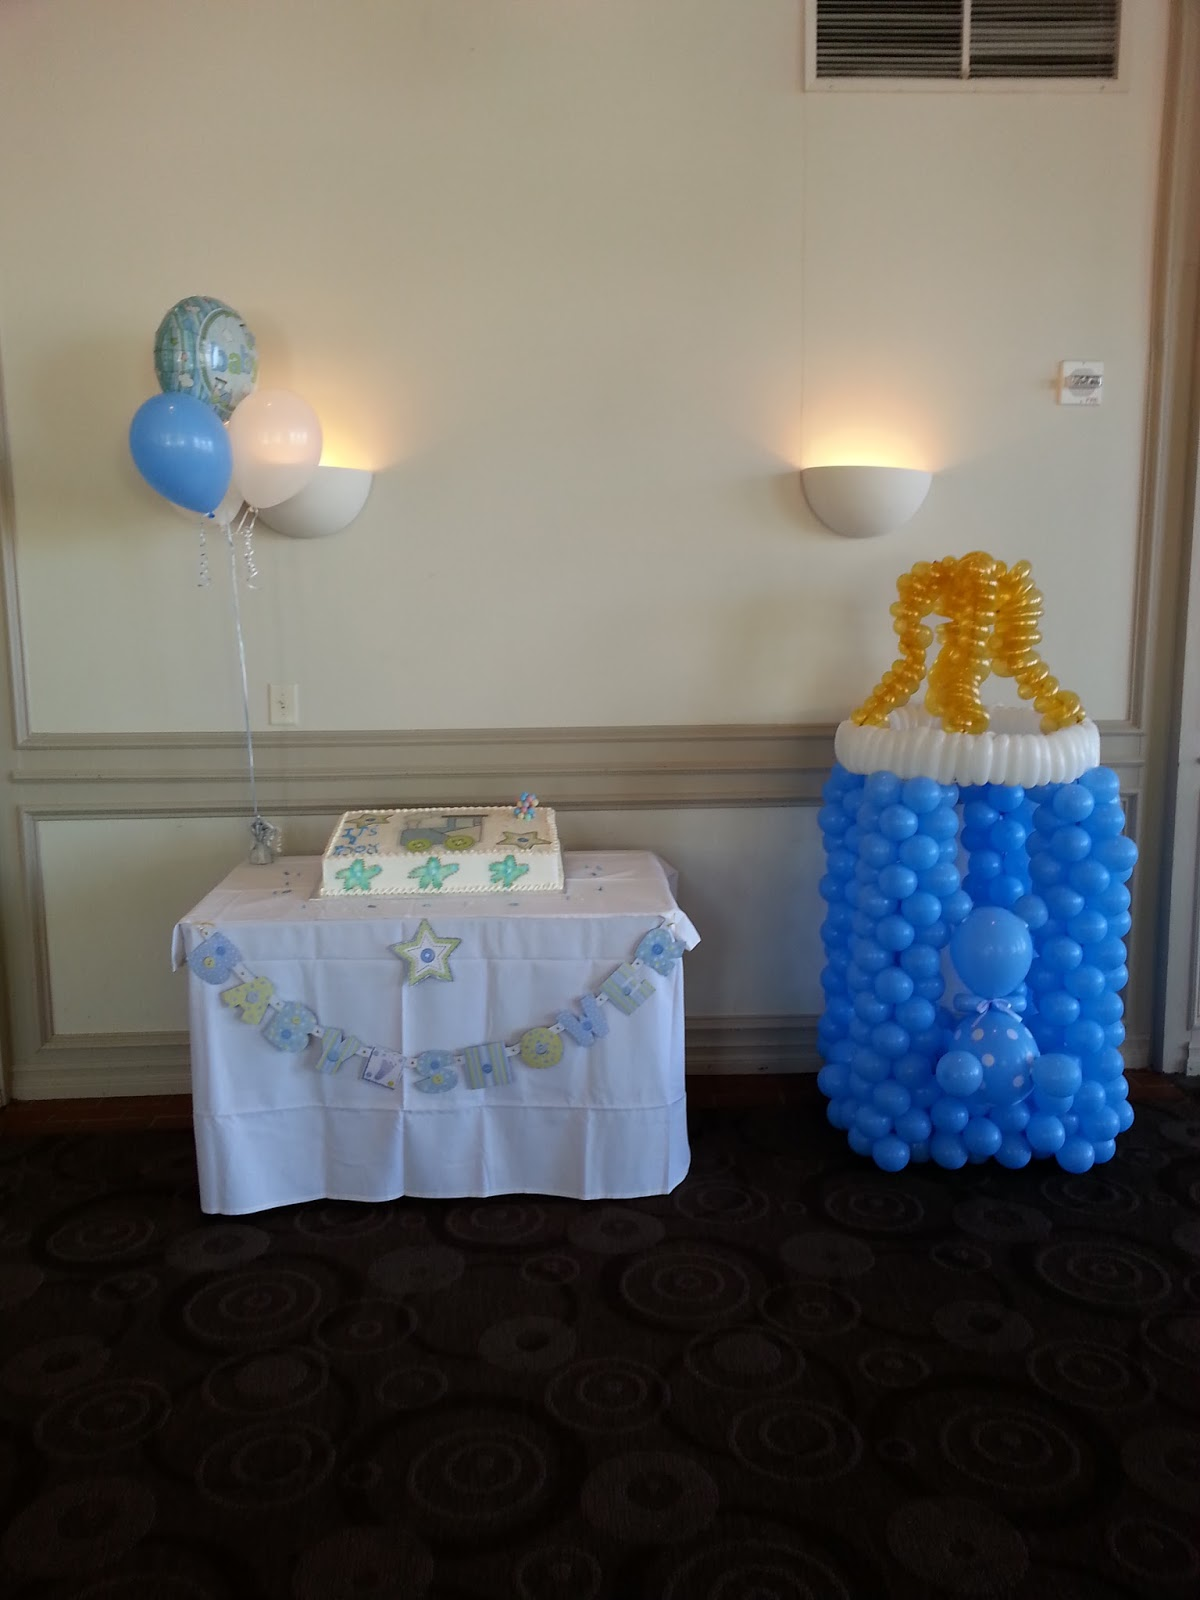 Boy Baby Shower Balloon Decorations 1200 x 1600